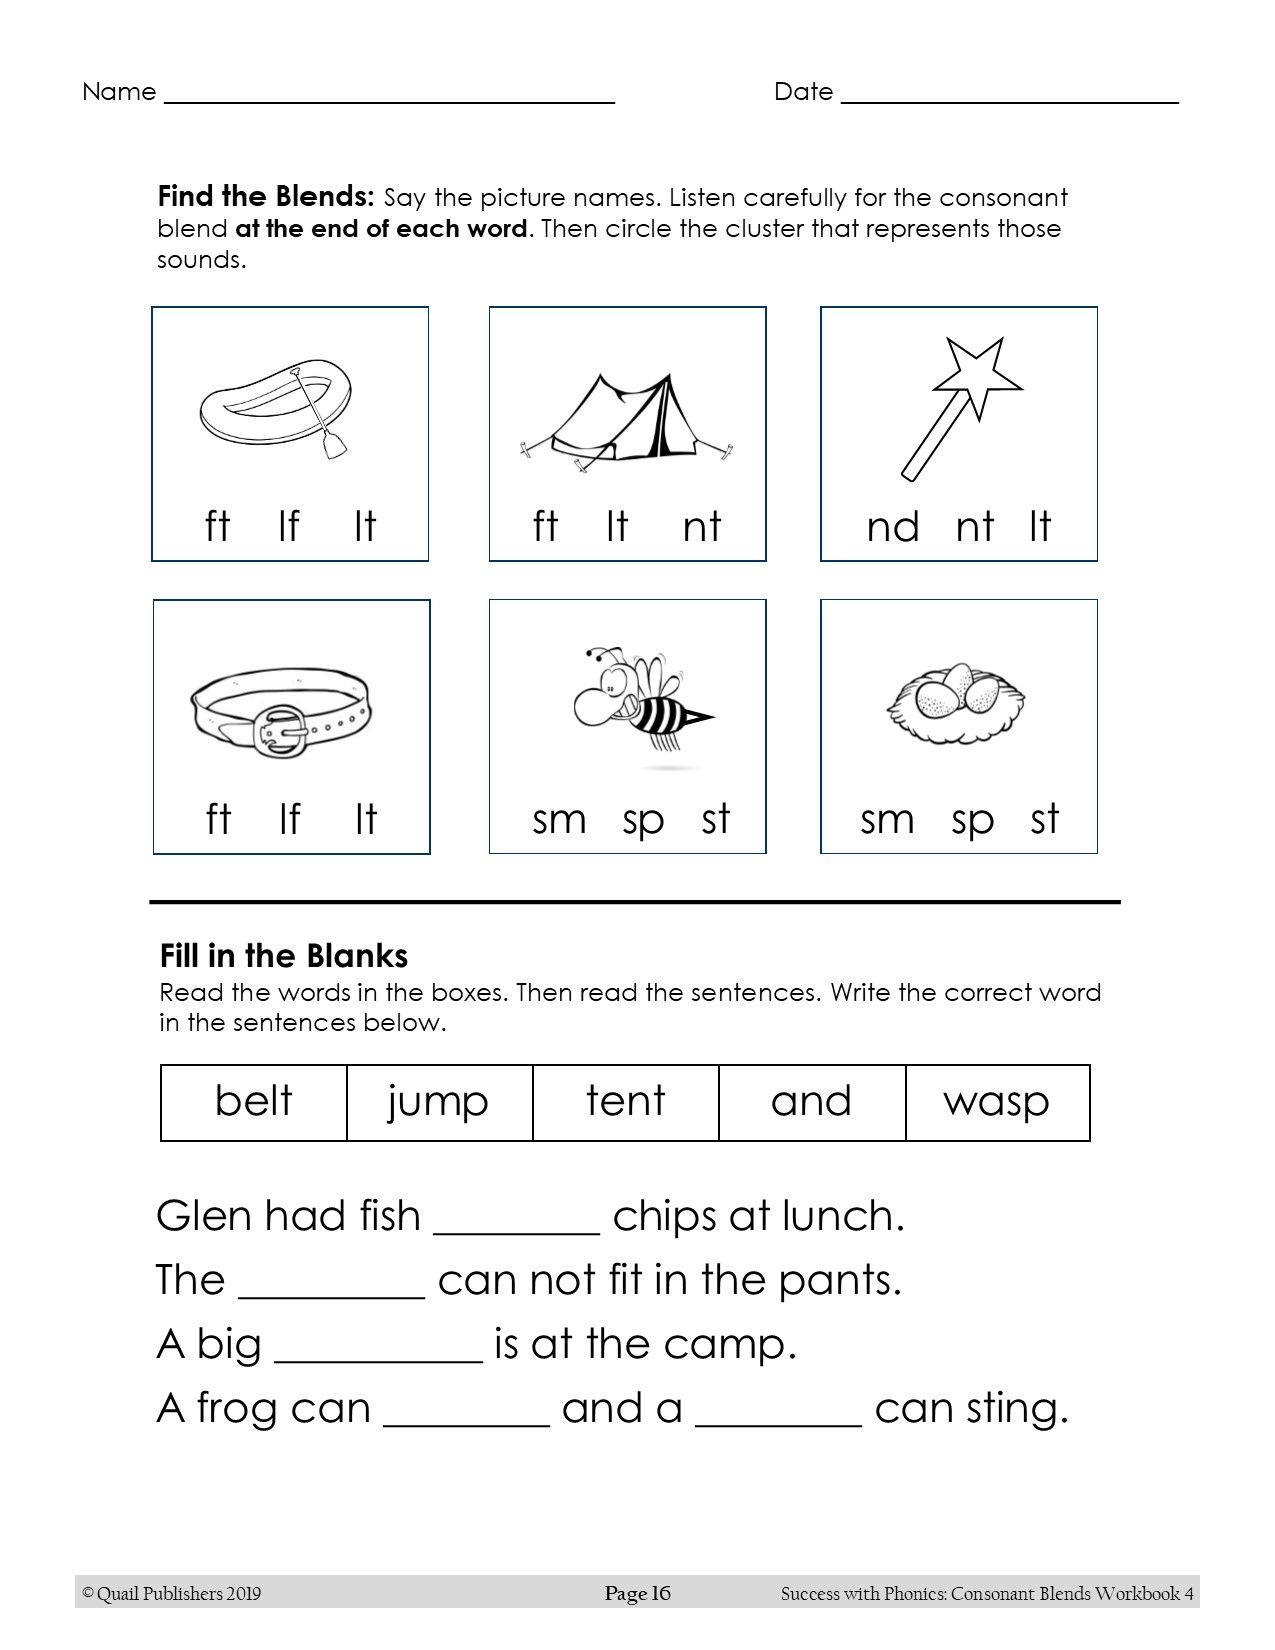 Success With Phonics Ending Blends